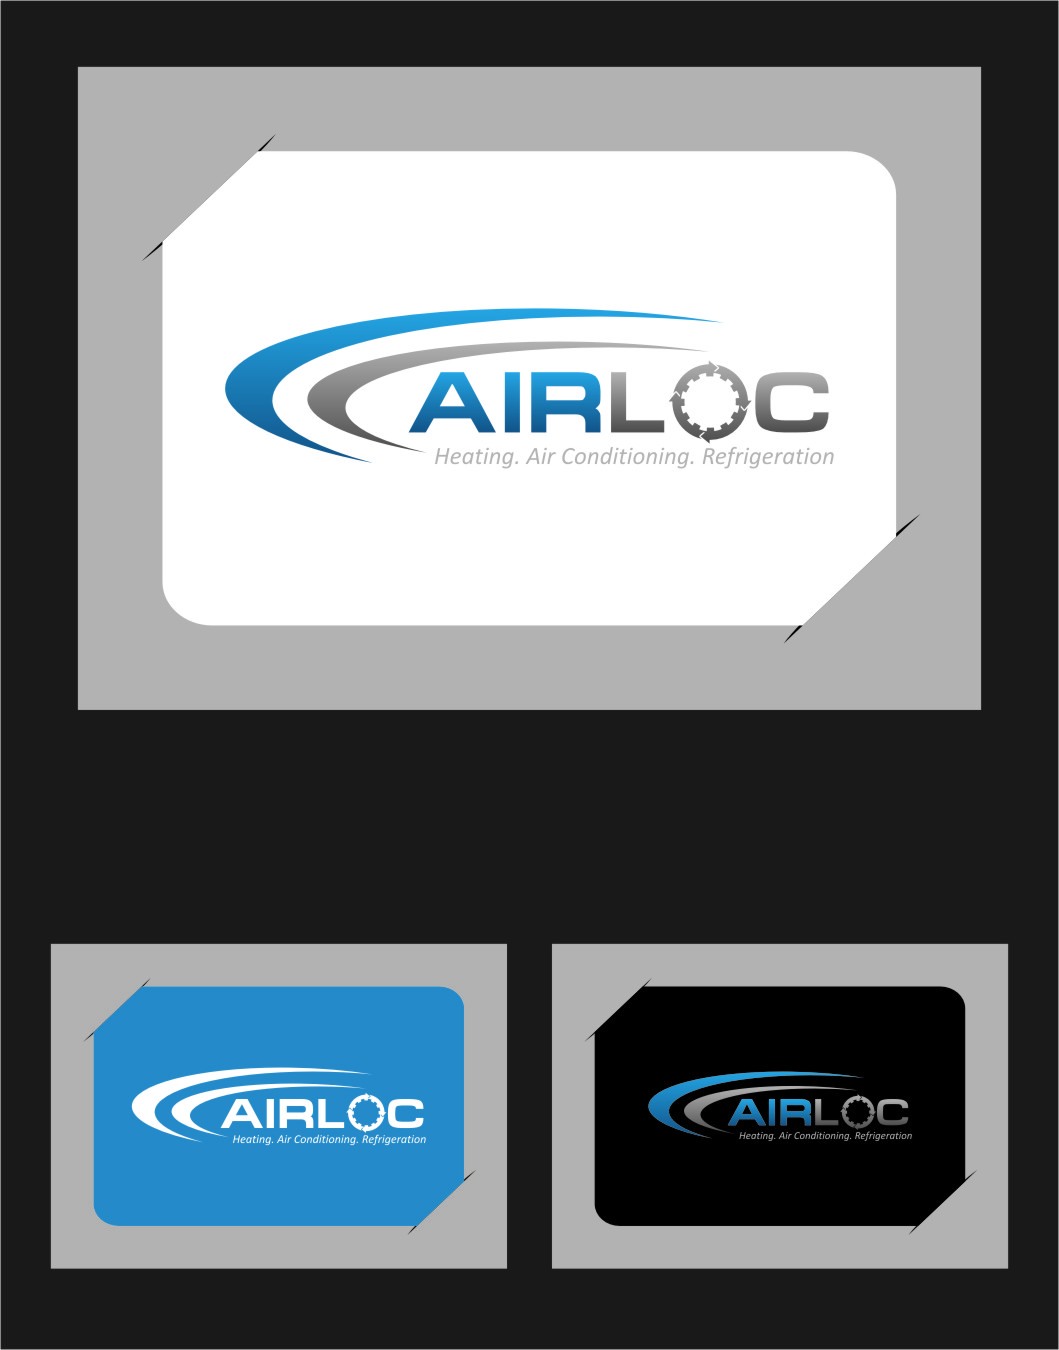 Logo Design by Ngepet_art - Entry No. 237 in the Logo Design Contest Airloc Logo Design.